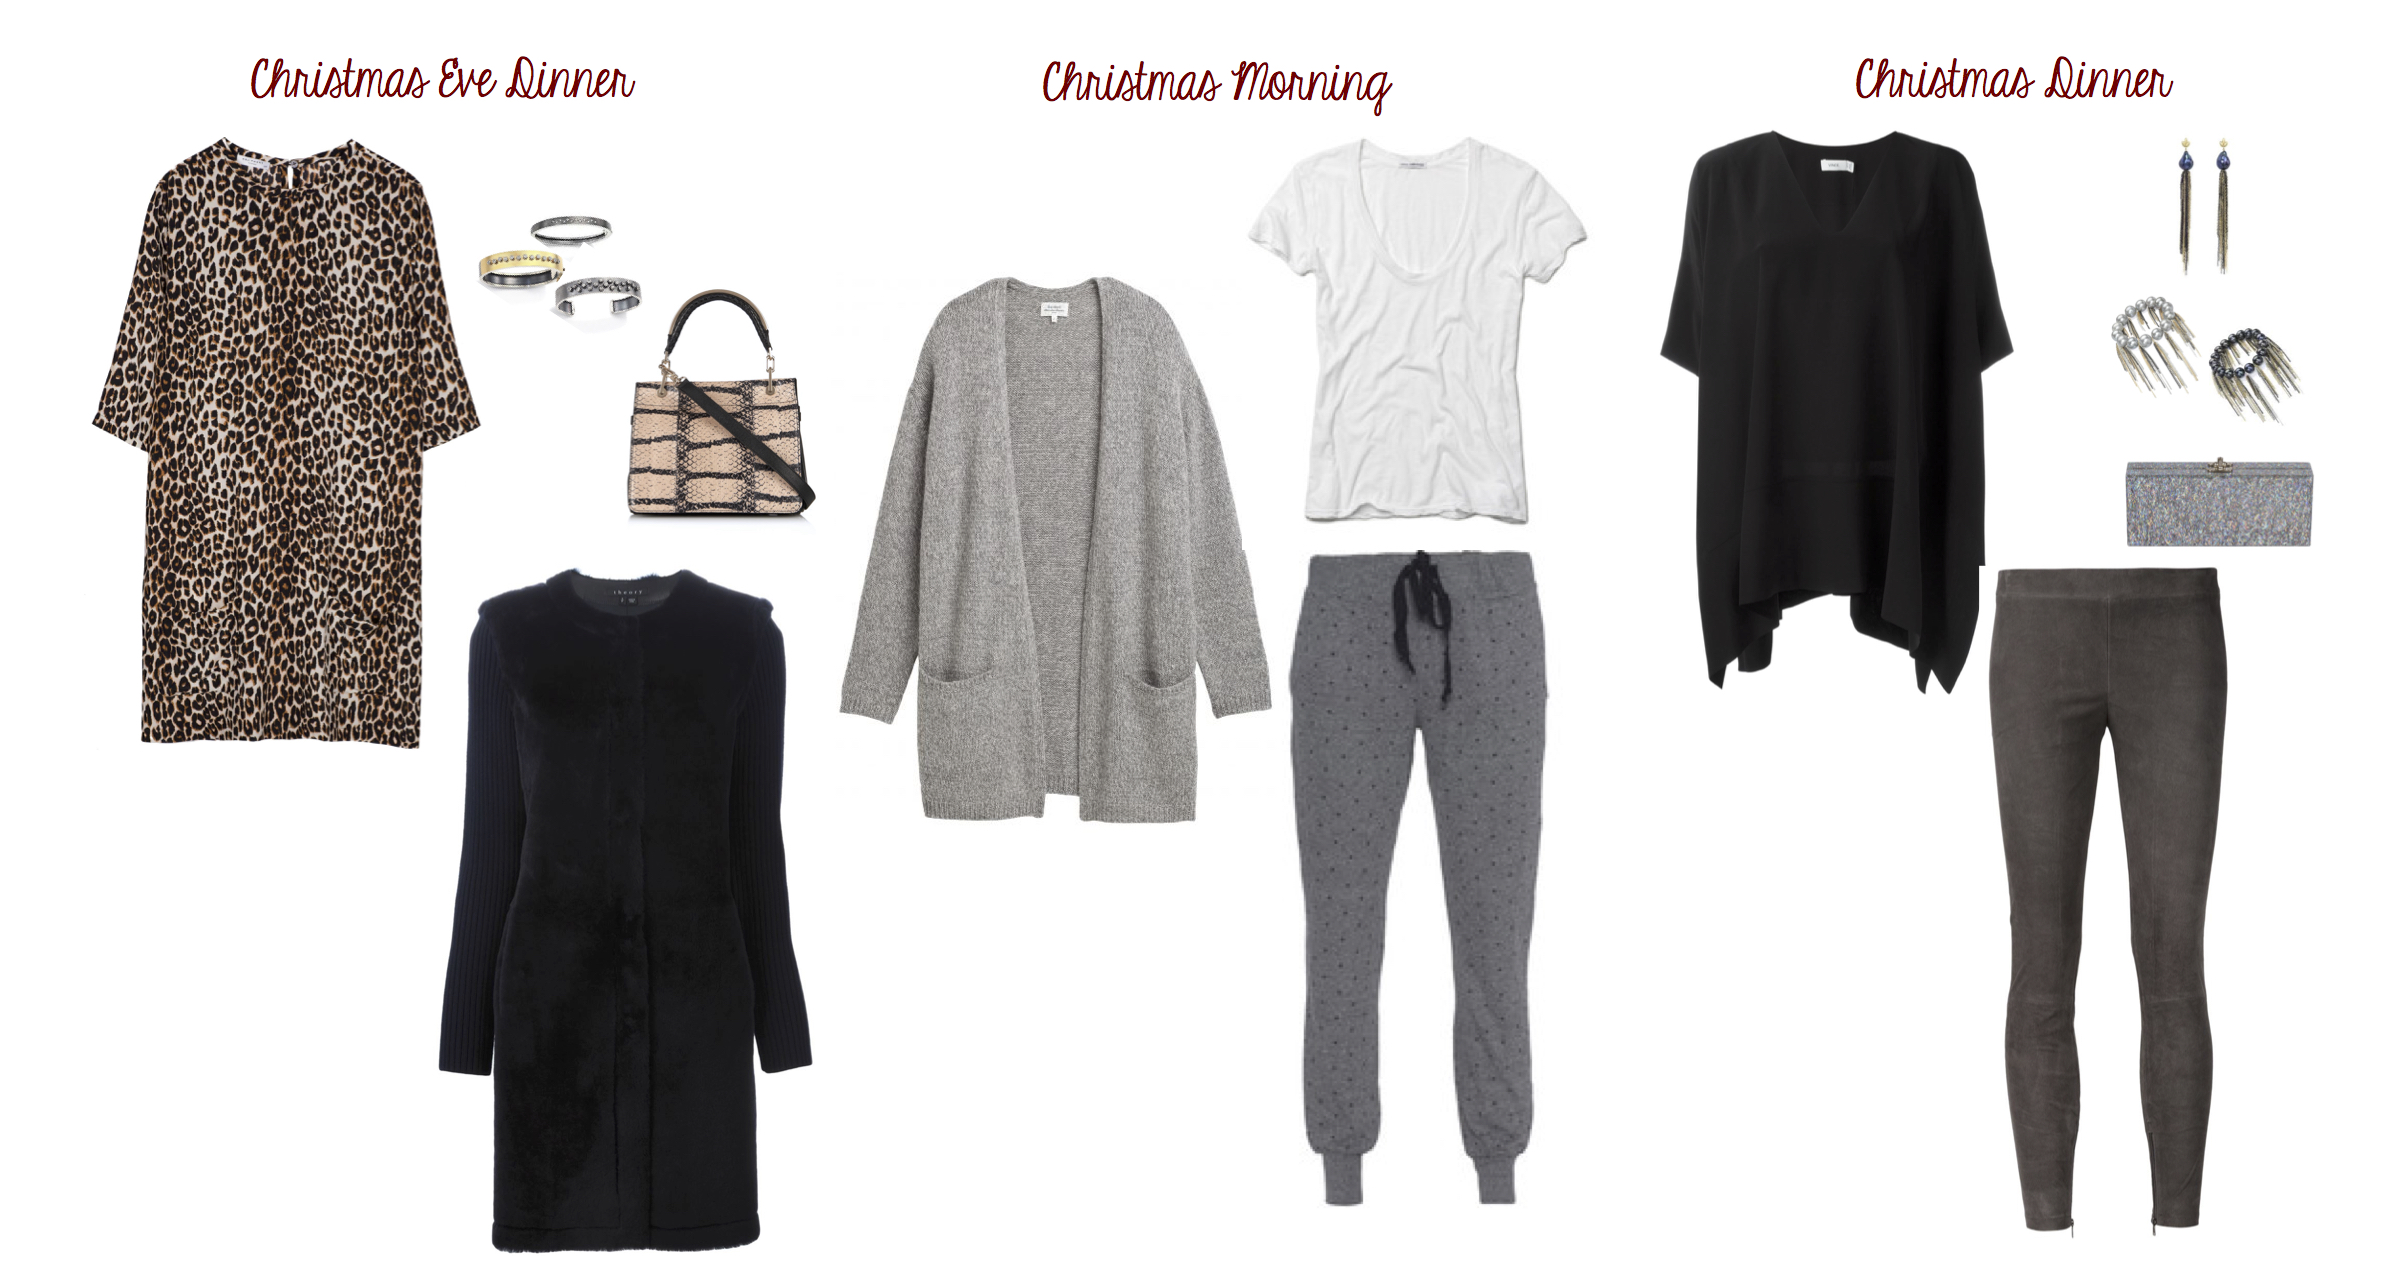 From L to R: Equipment dress, Rene Escobar bangles, Max Mara purse, Theory shearling jacket, Hartford sweater, James Perse tee, Current/Elliott sweats, Vince silk top and suede leggings, Samira 13 earrings and bangles and Ashlyn'd lucite clutch.